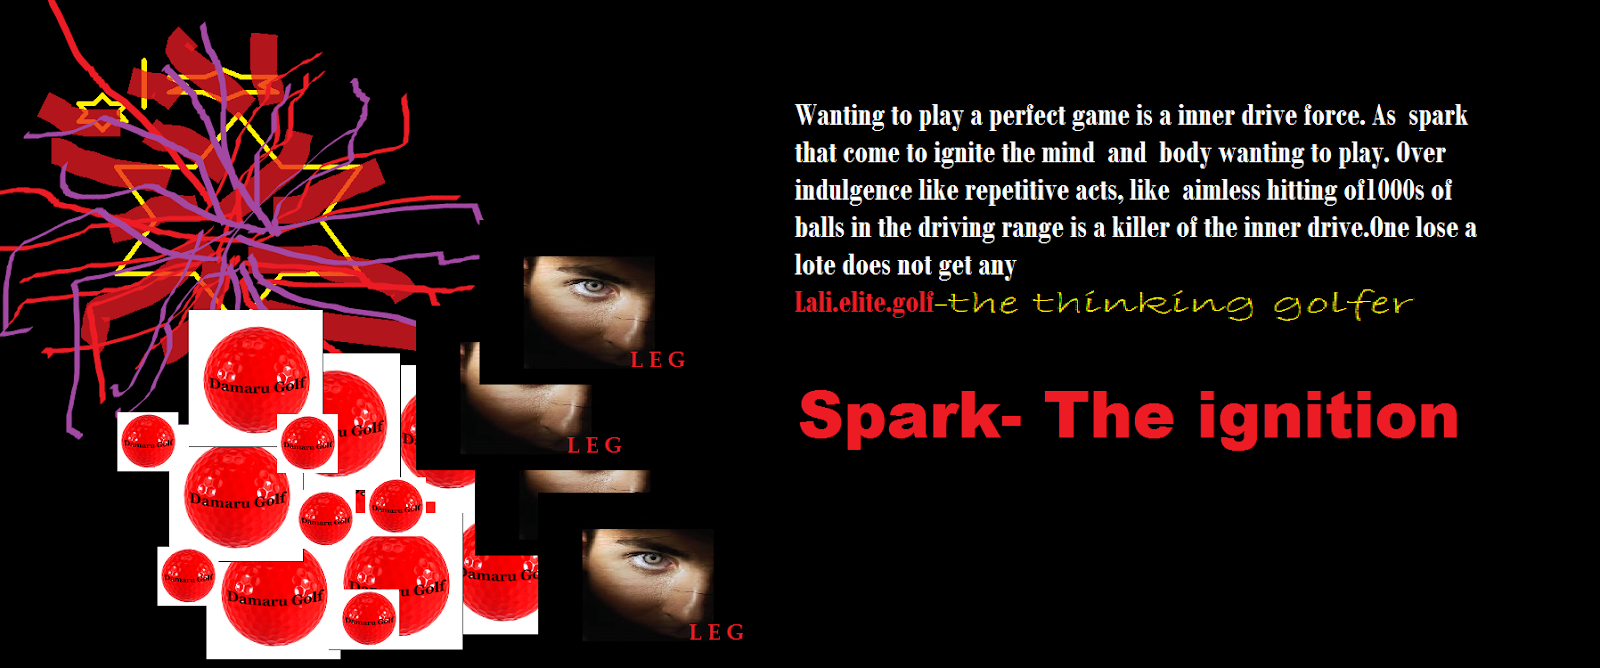 lali.elite.golf-Spark- The ignition.png